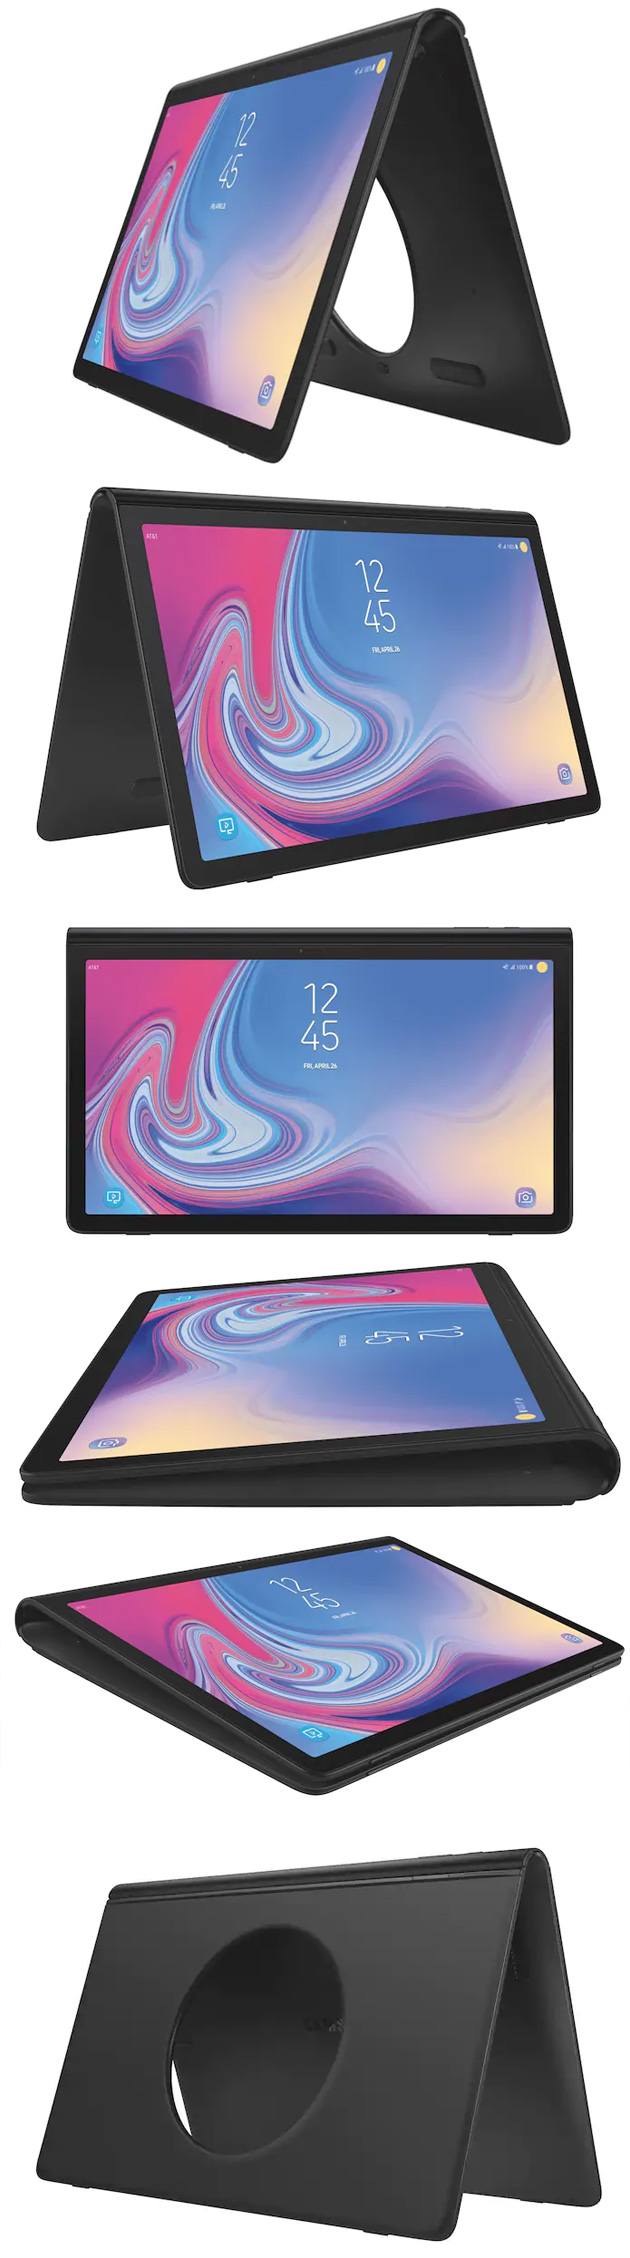 Samsung Galaxy View2